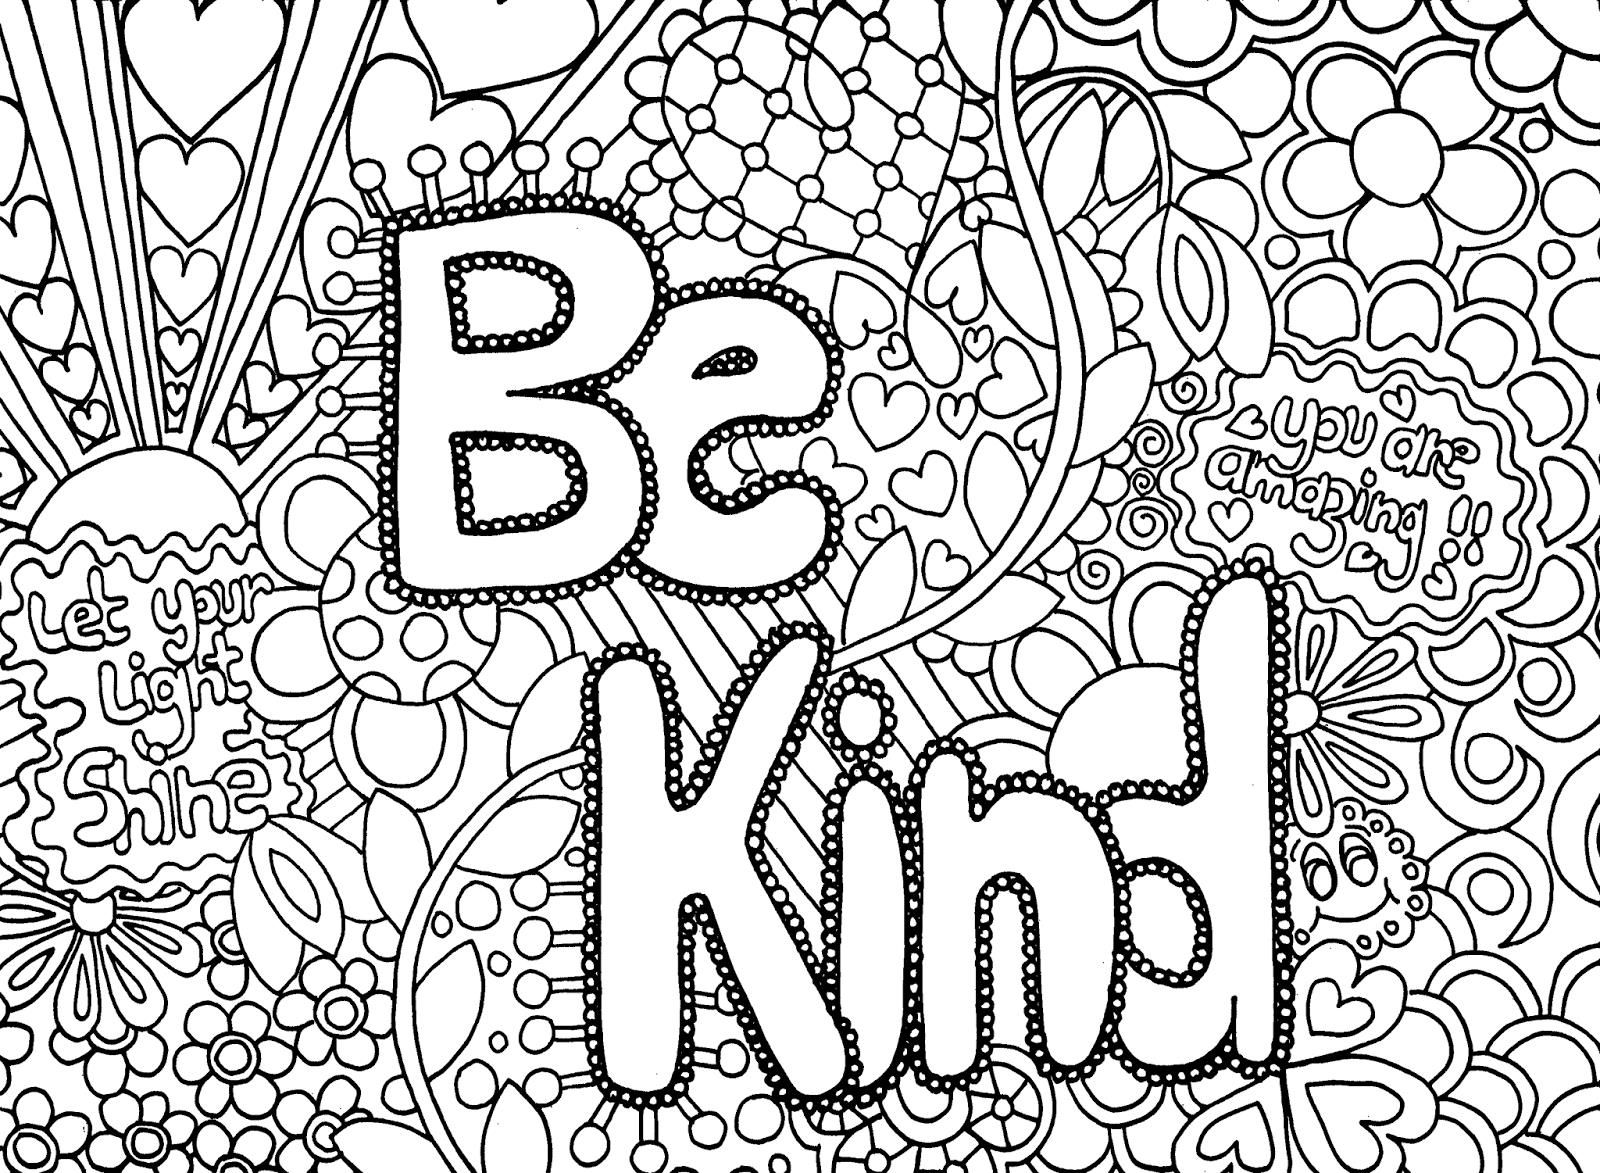 difficult hard coloring pages printable browse for more free printable hard coloring pages difficult hard coloring pages printable listed in hard - Free Difficult Coloring Pages